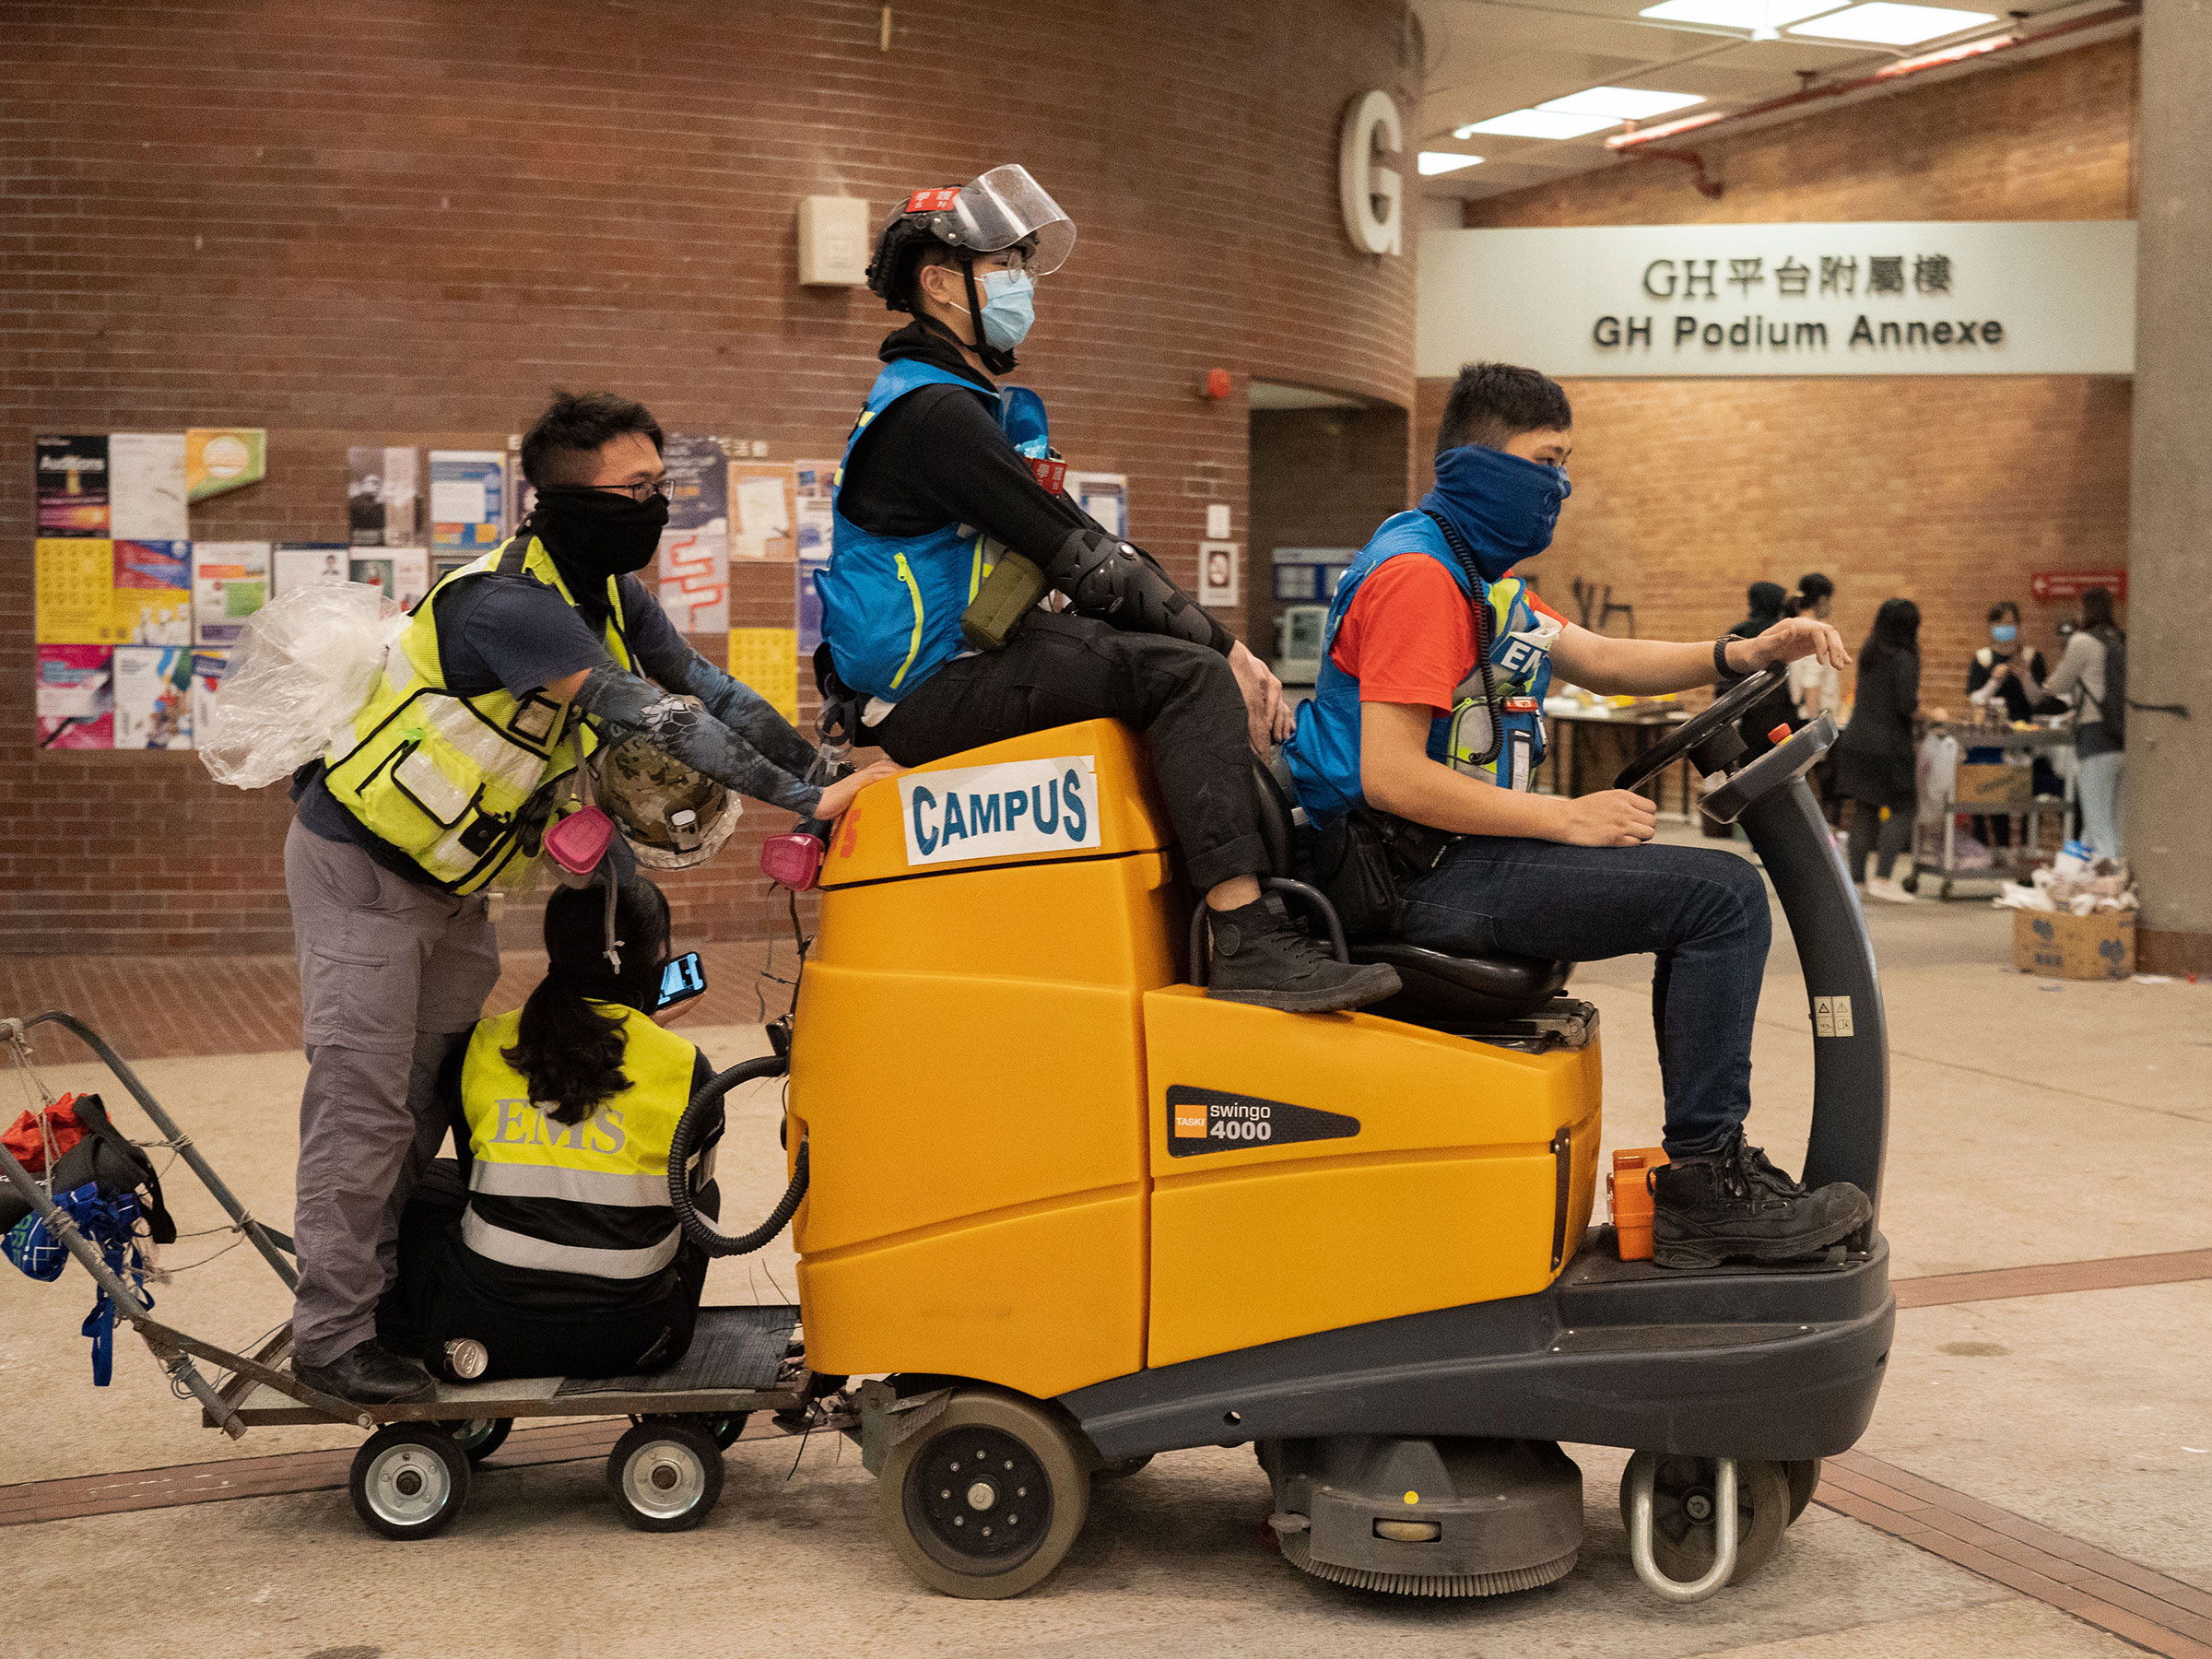 First-aiders convert a floor cleaning machine into a makeshift ambulance, Nov. 14.